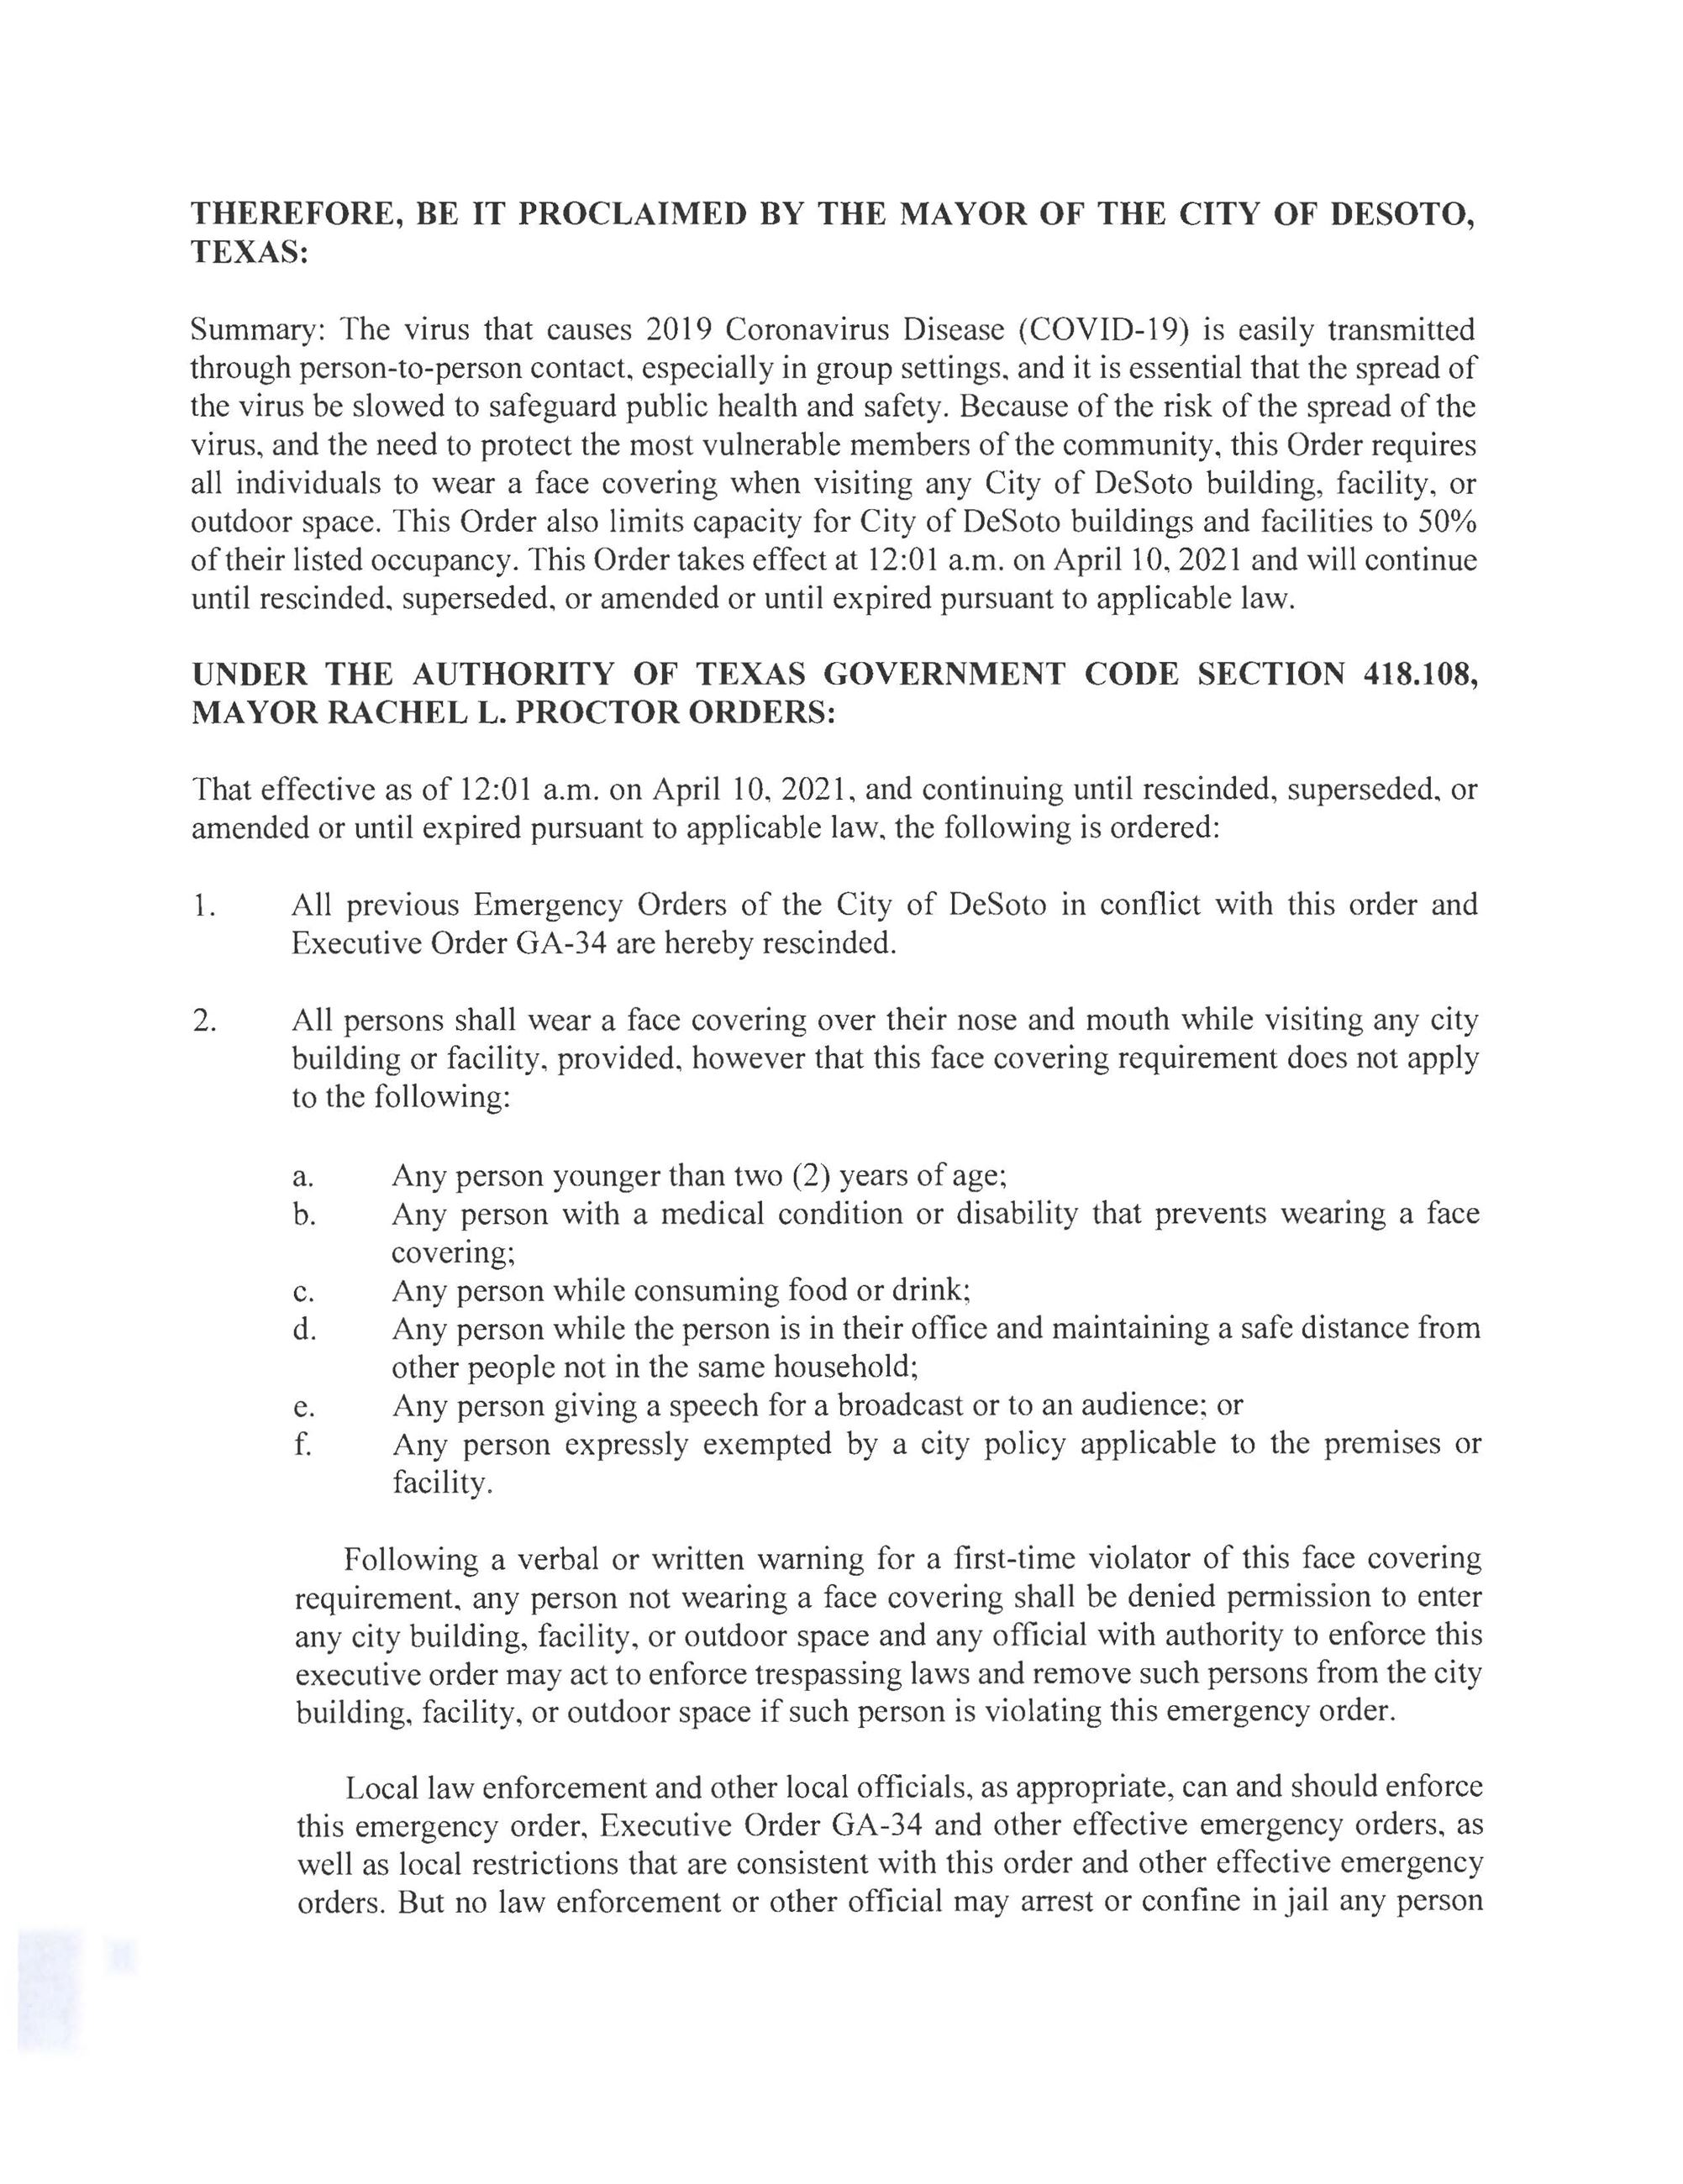 2021-04-10 Executive Mask Order from Mayor Proctor_Page_2